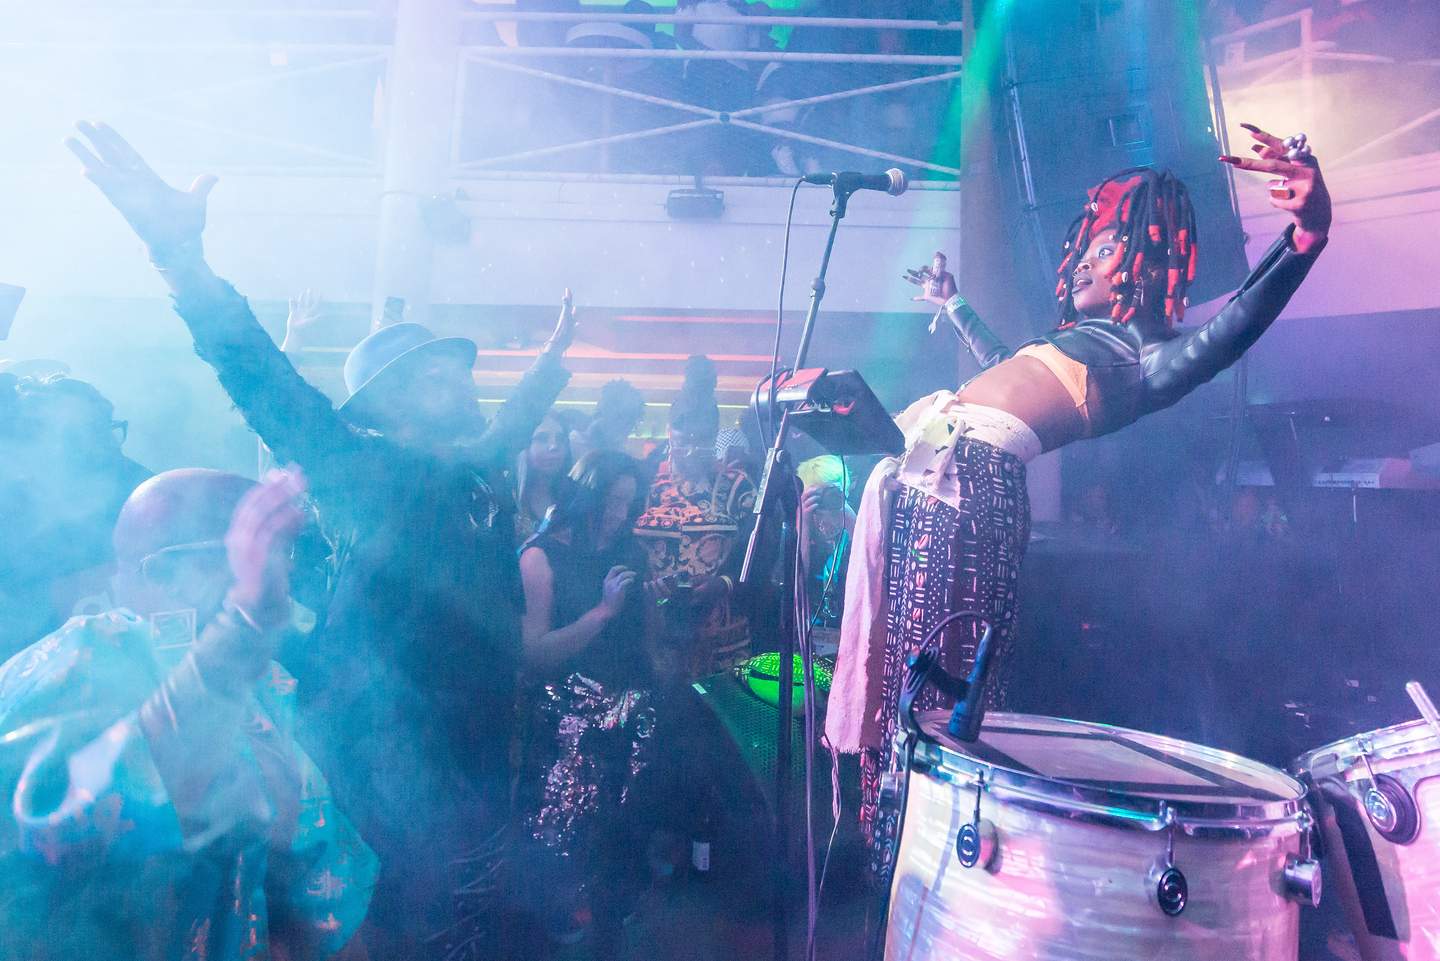 JOJO ABOT at Highland Lounge, presented by Africa To The World presented by Digiwaxx with Bavent Street Live & OkayAfrica – Photo by Joe Cavazos